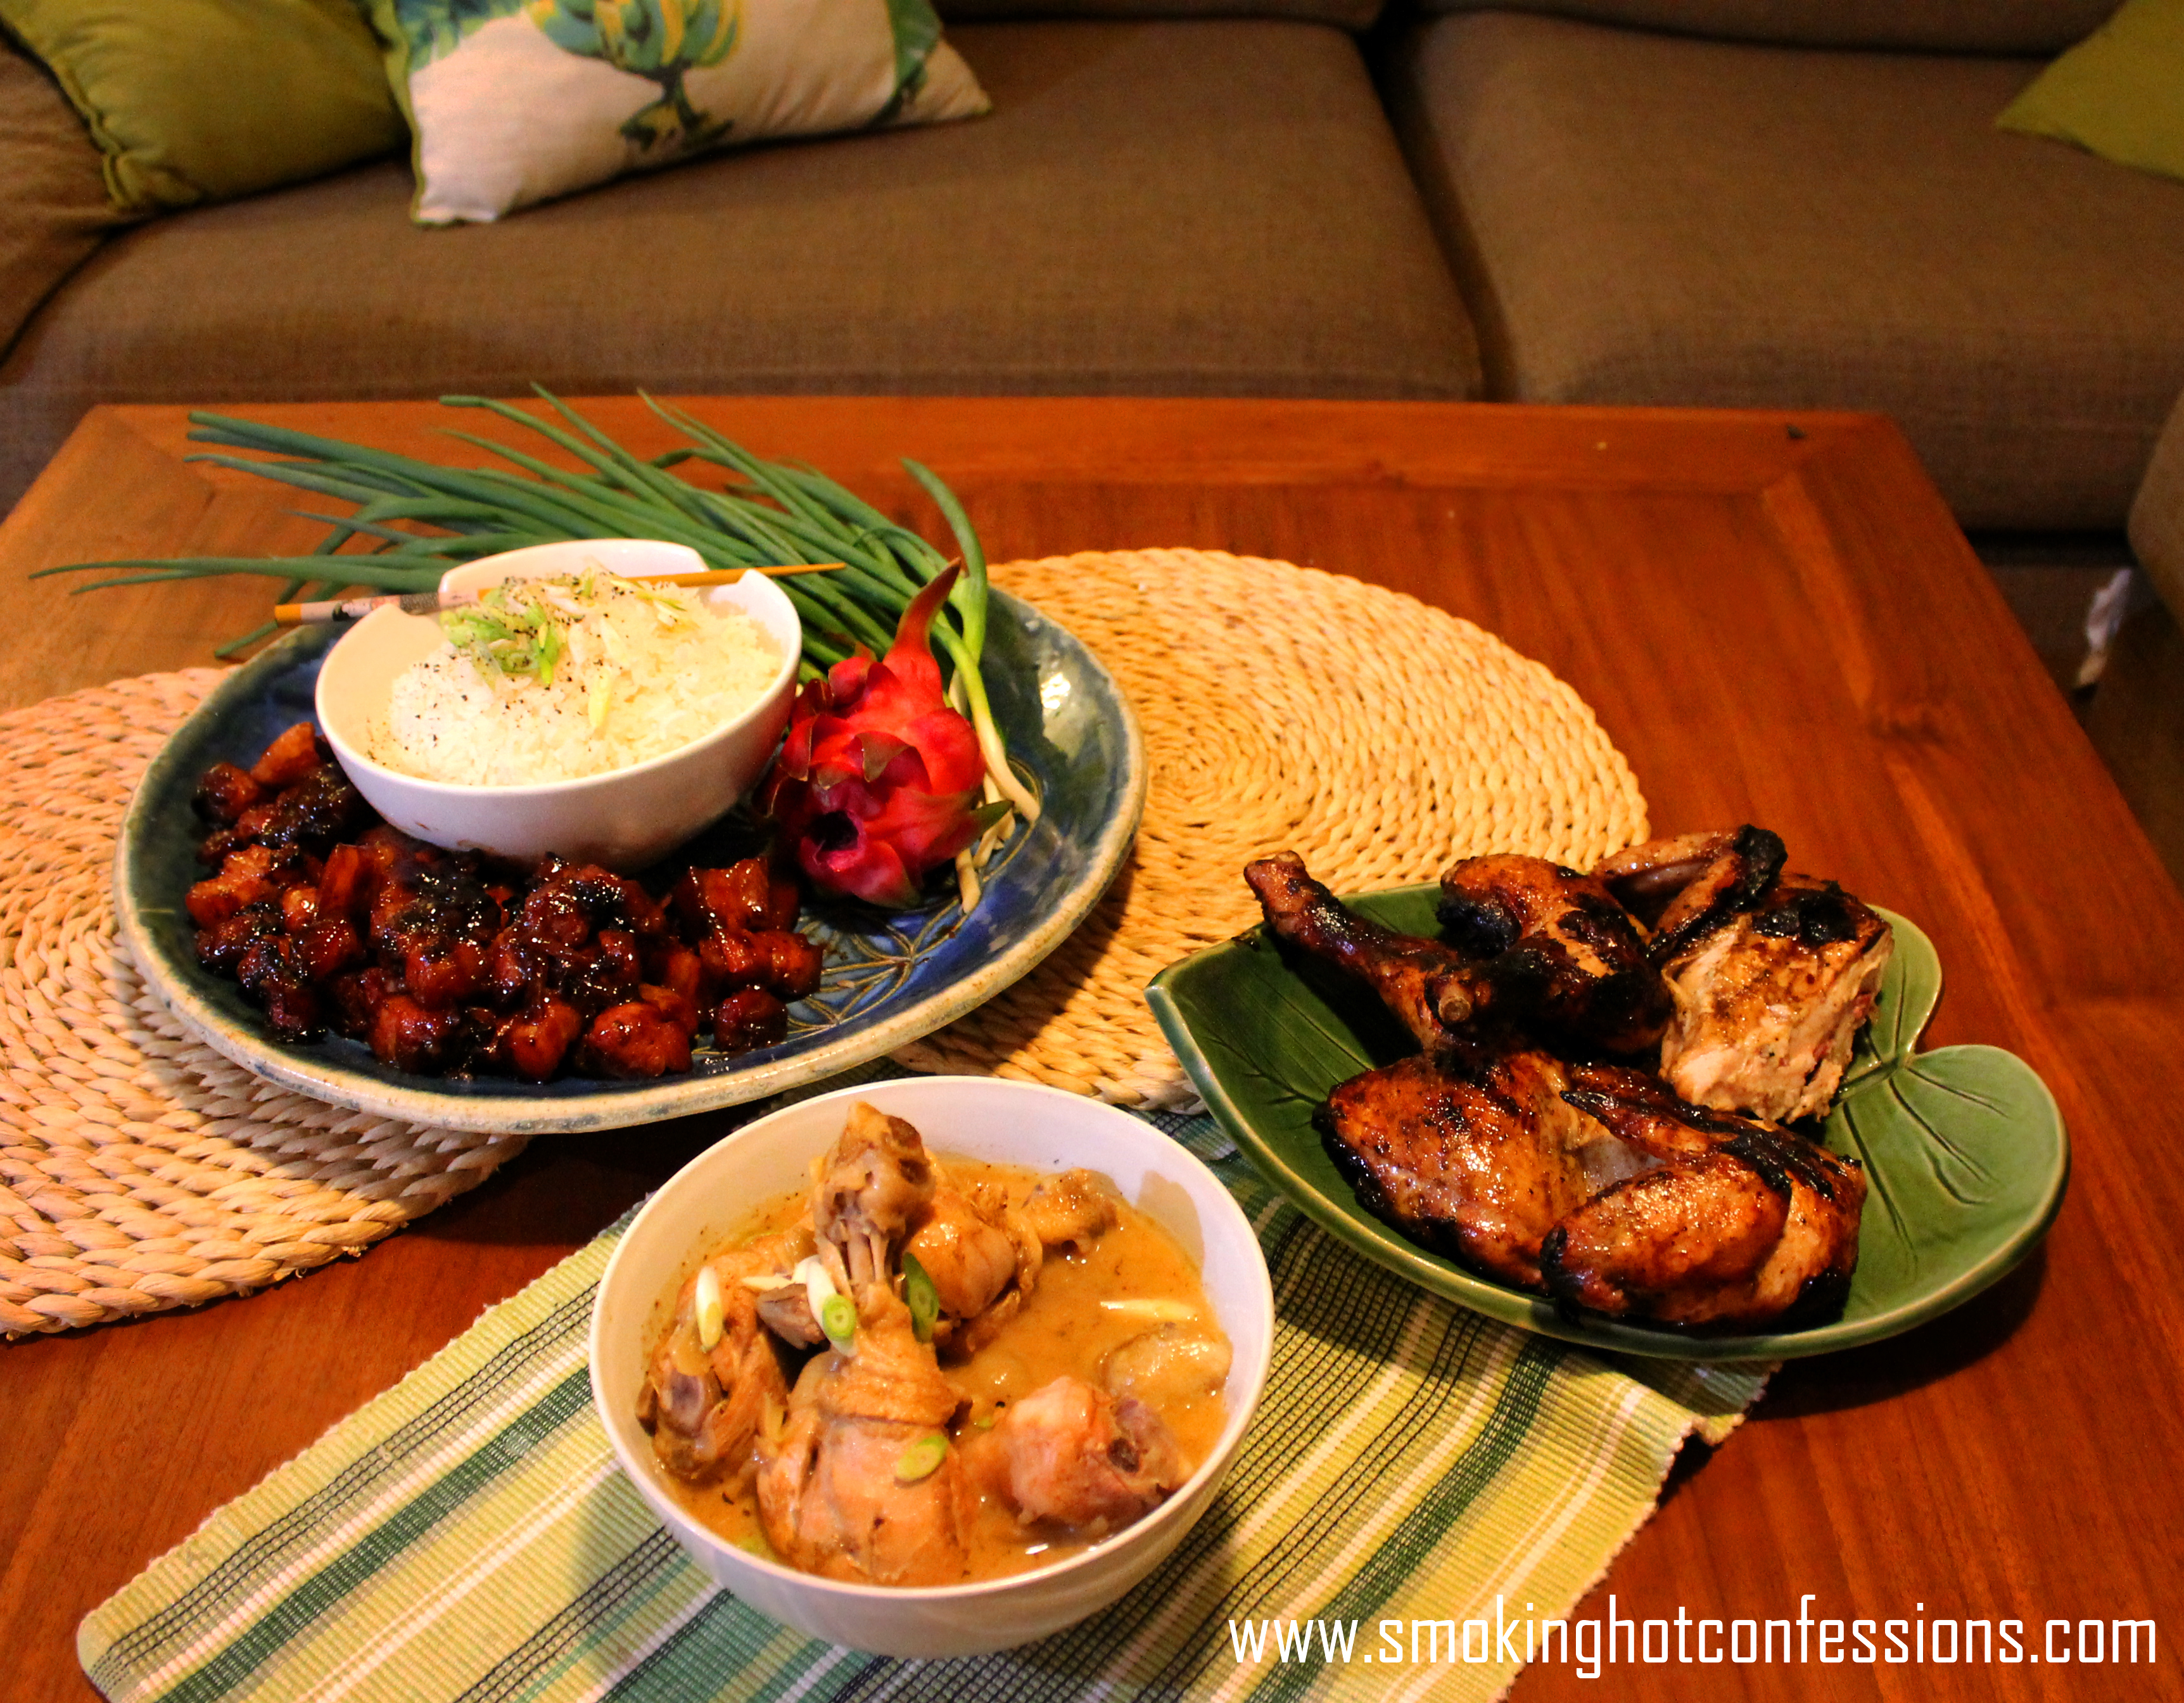 A Banquet for Chinese New Year - 'Gong Hay Fat Choy Everybody!'